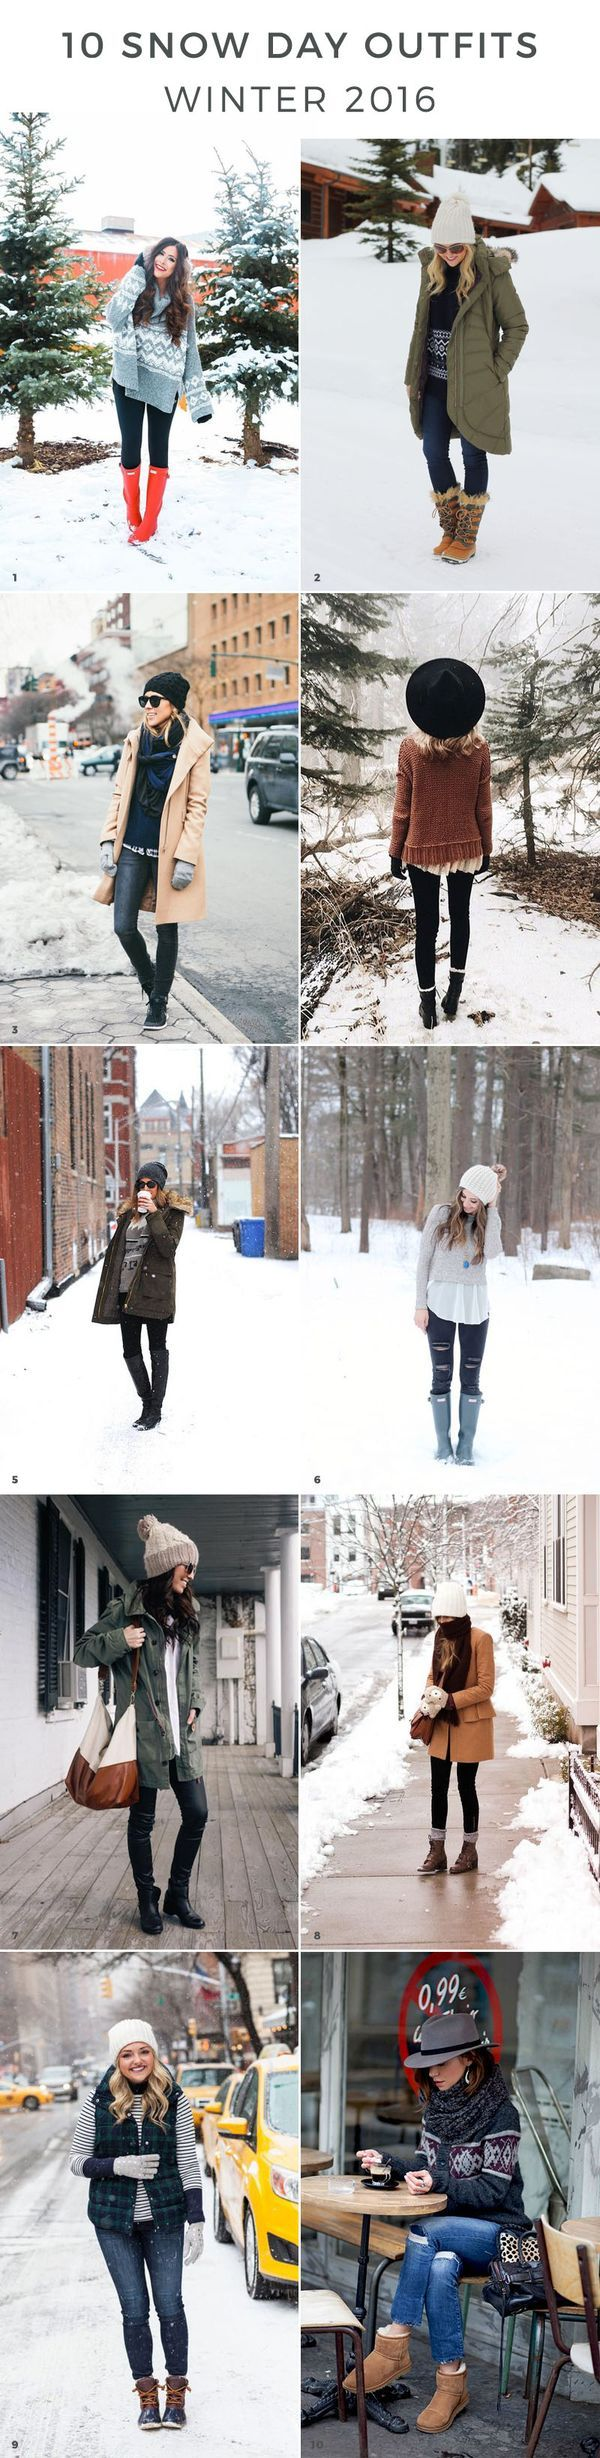 Looking for a cute snowday outfit to stroll around town in? Here are 10 winter outfits for snow to try out. You can go wrong with an oversized sweaters, tall boots, and a cute hat!